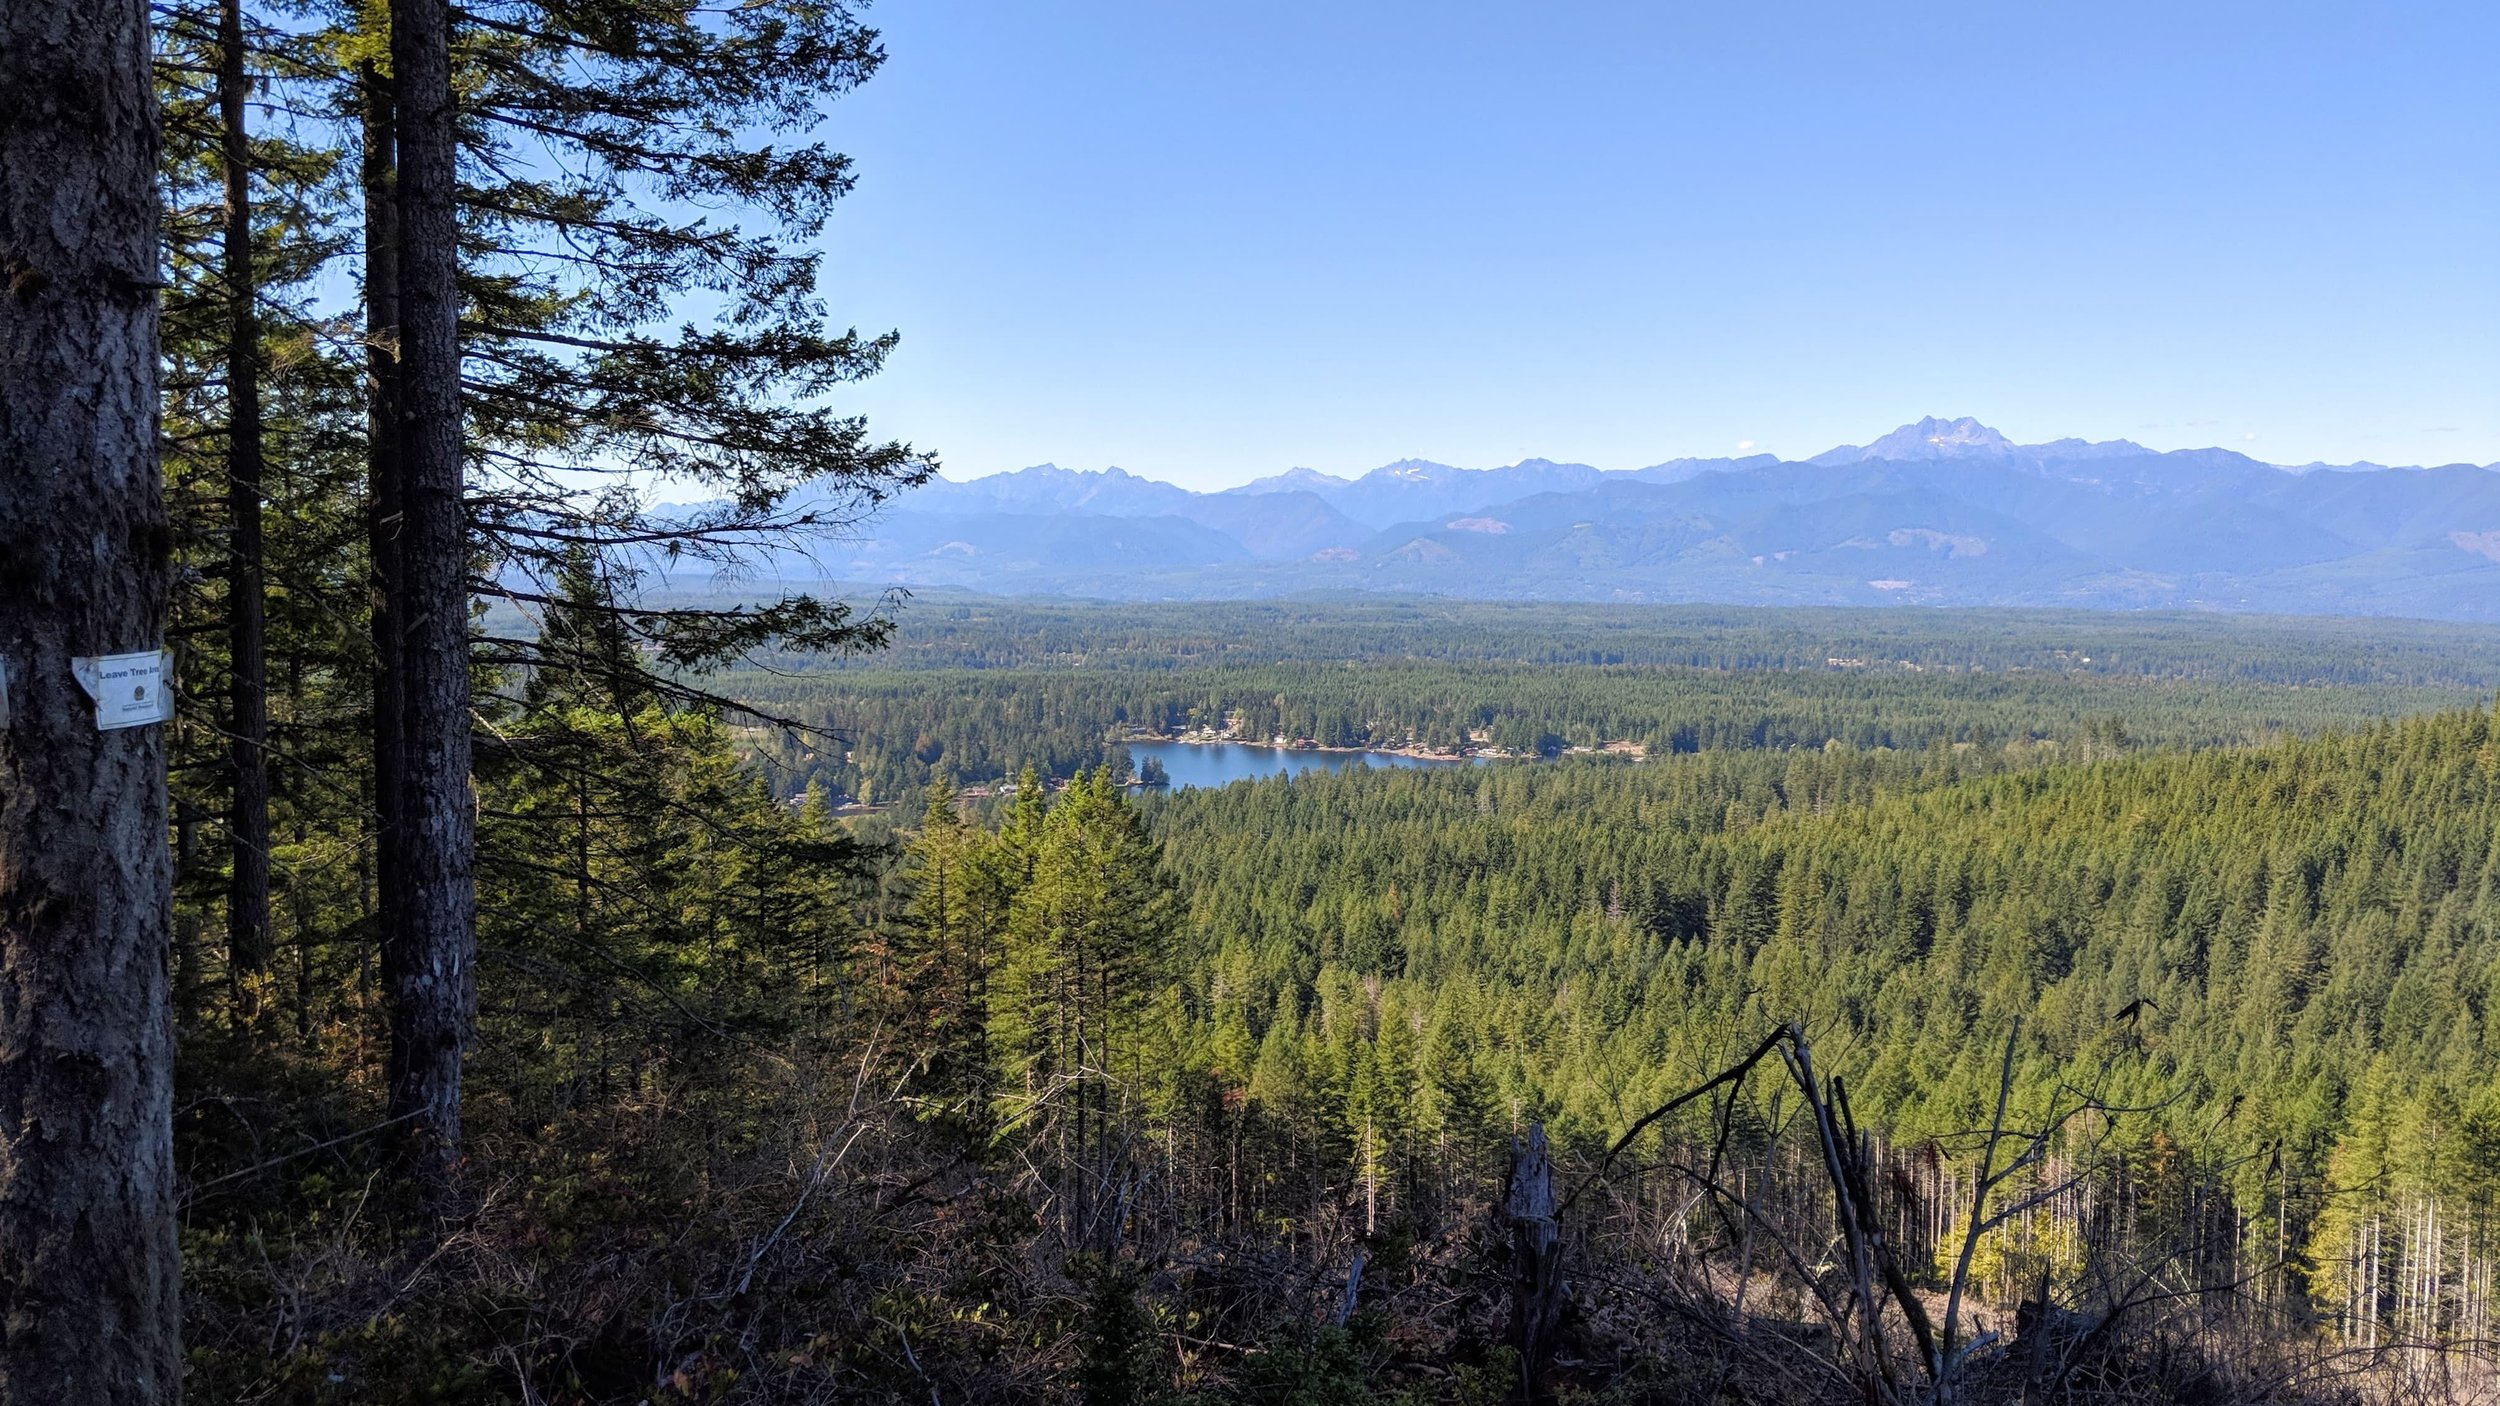 View of Olympic Mountains from Gold Creek Trail on Green Mountain